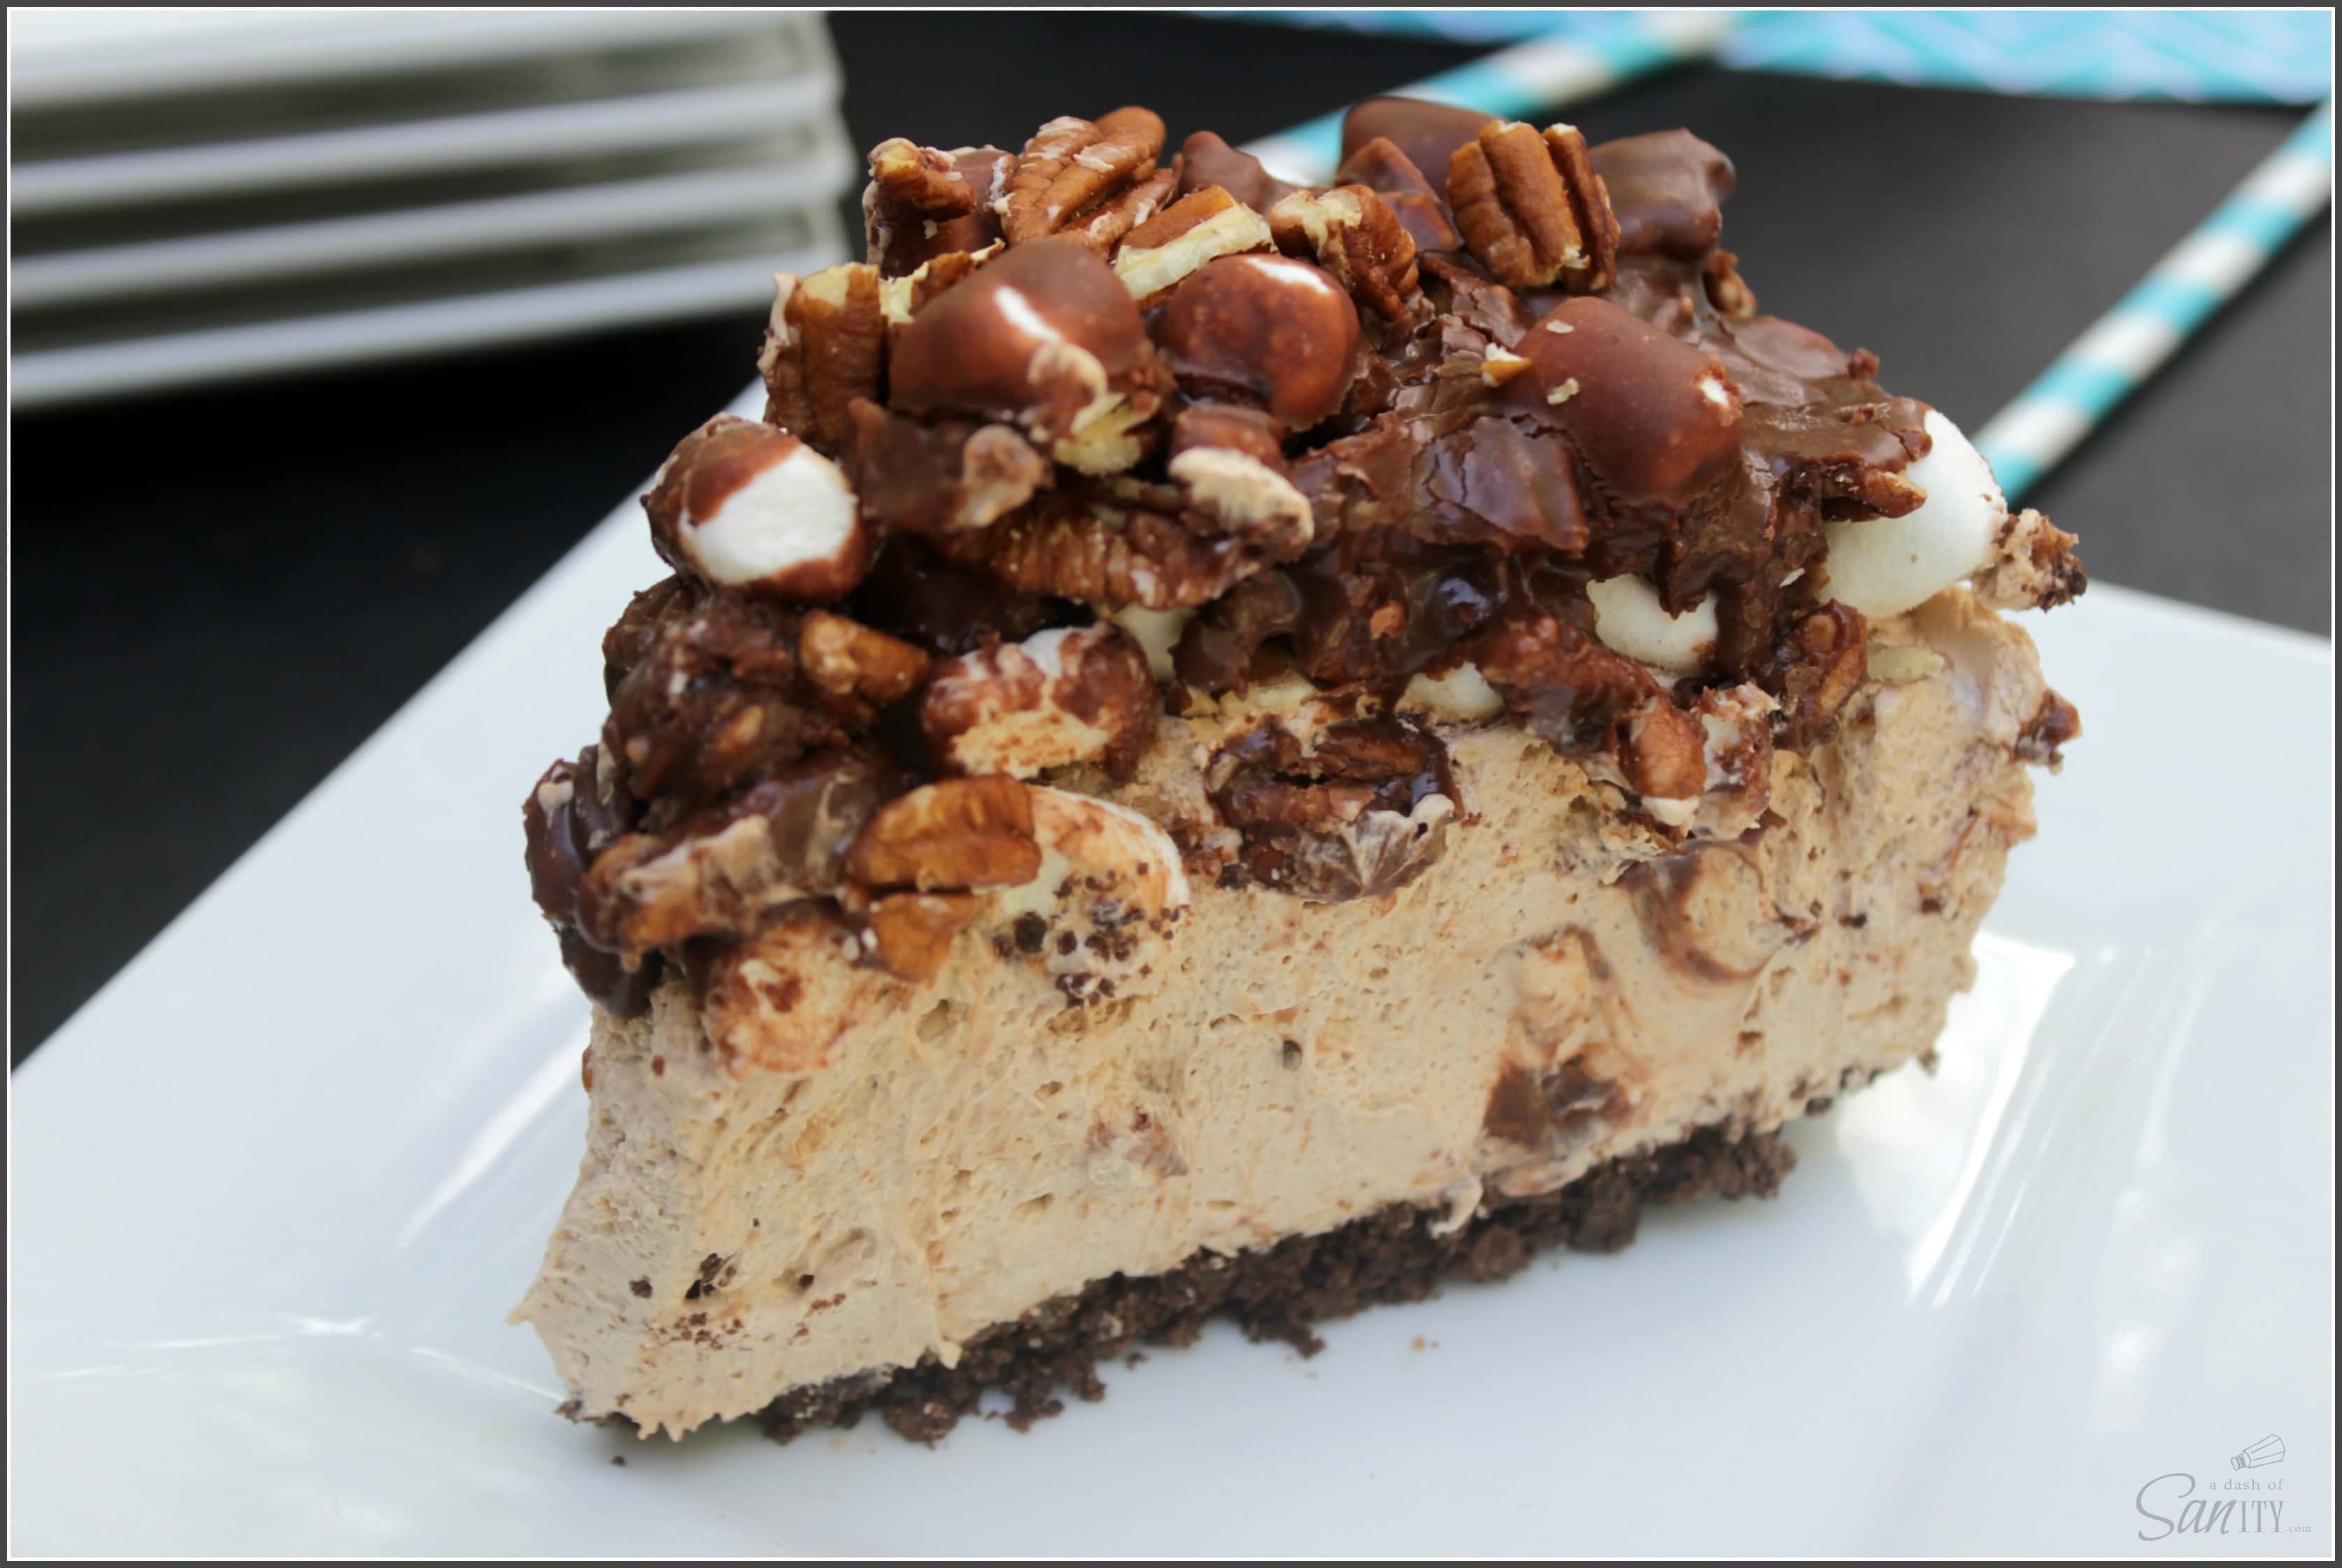 Mississippi Mud Pie No Bake Cheesecake is a fluffy milk chocolate cheesecake, with a chocolate crust, & topped with a marshmallow pecan fudge frosting.